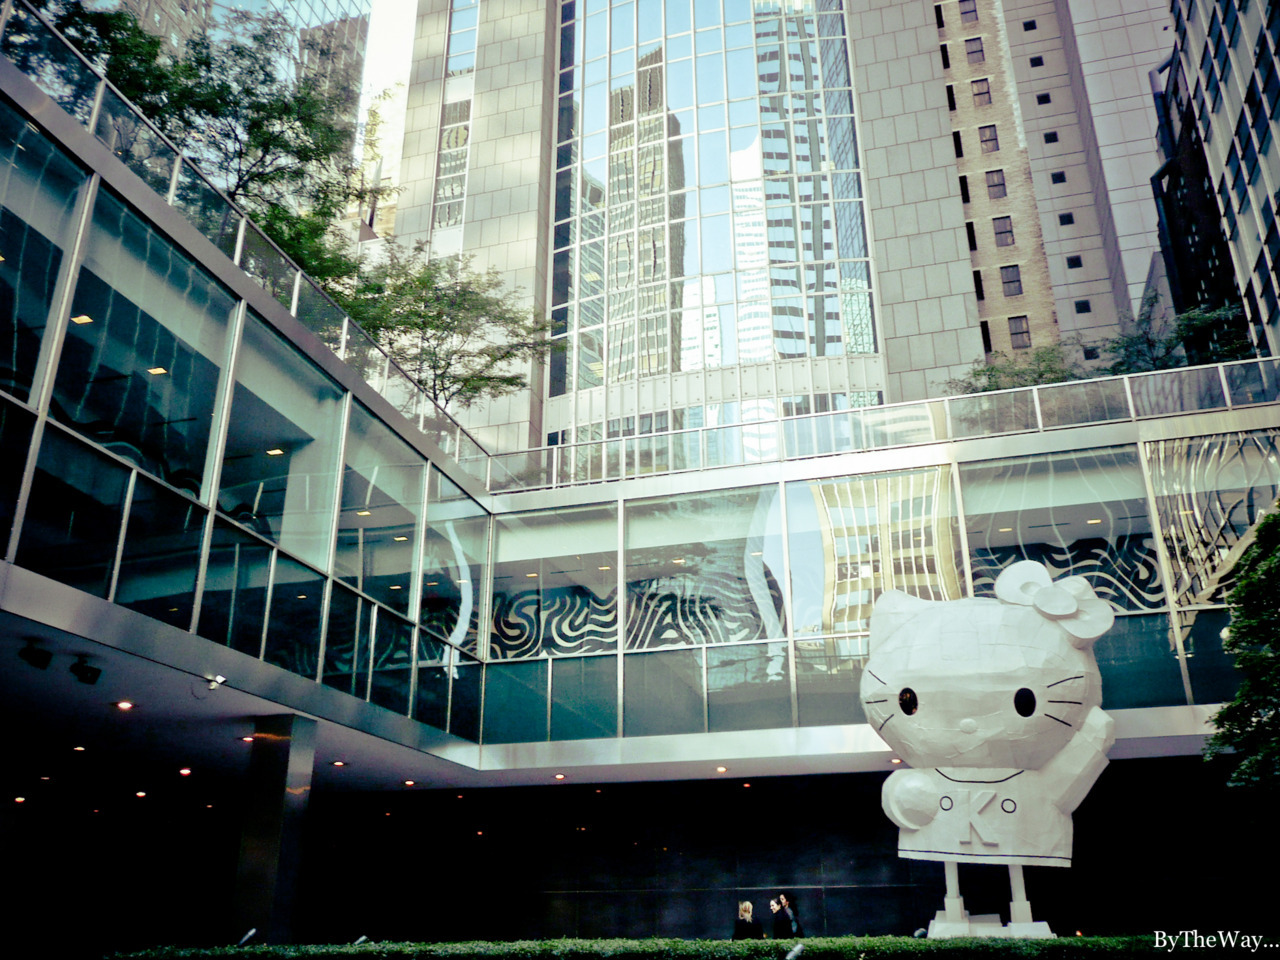 Giant Hello Kitty statue by Tom Sachs, outside the Lever House Art Collection, btw 53th & Park avenue - Manhattan, New York City